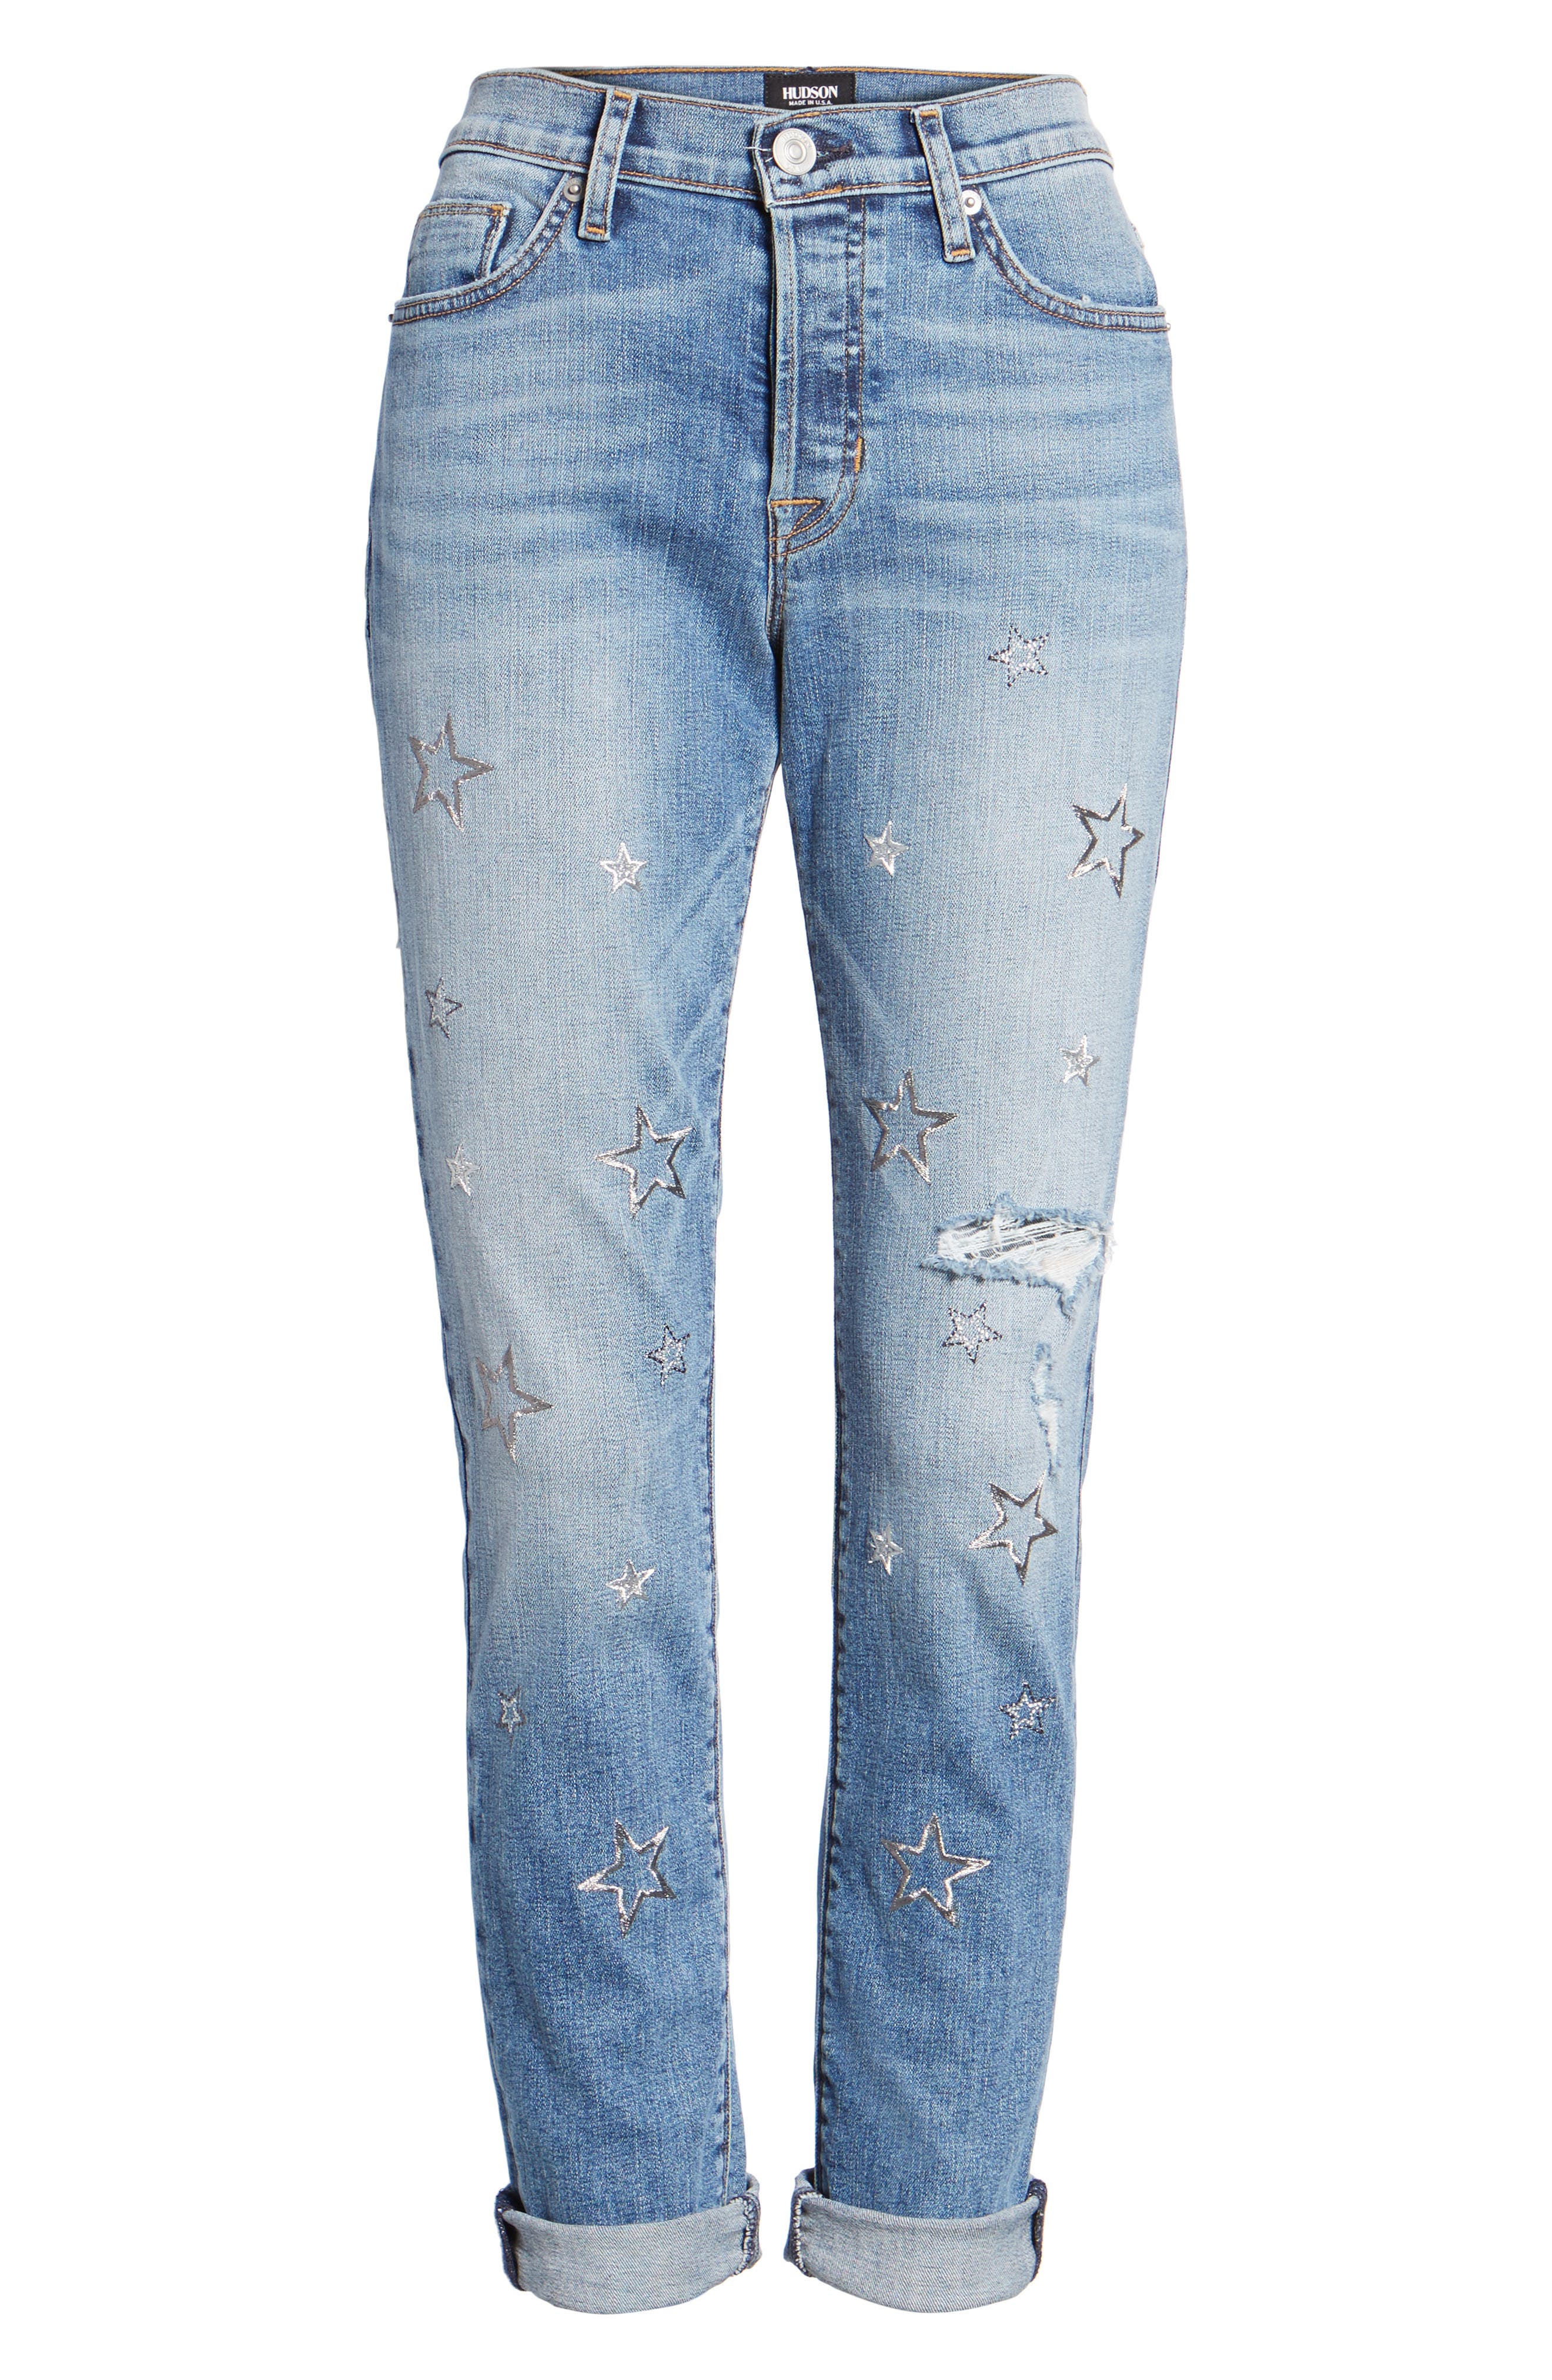 Alternate Image 1 Selected - Hudson Jeans Crop Riley Relaxed Straight Leg Jeans (Optimize)